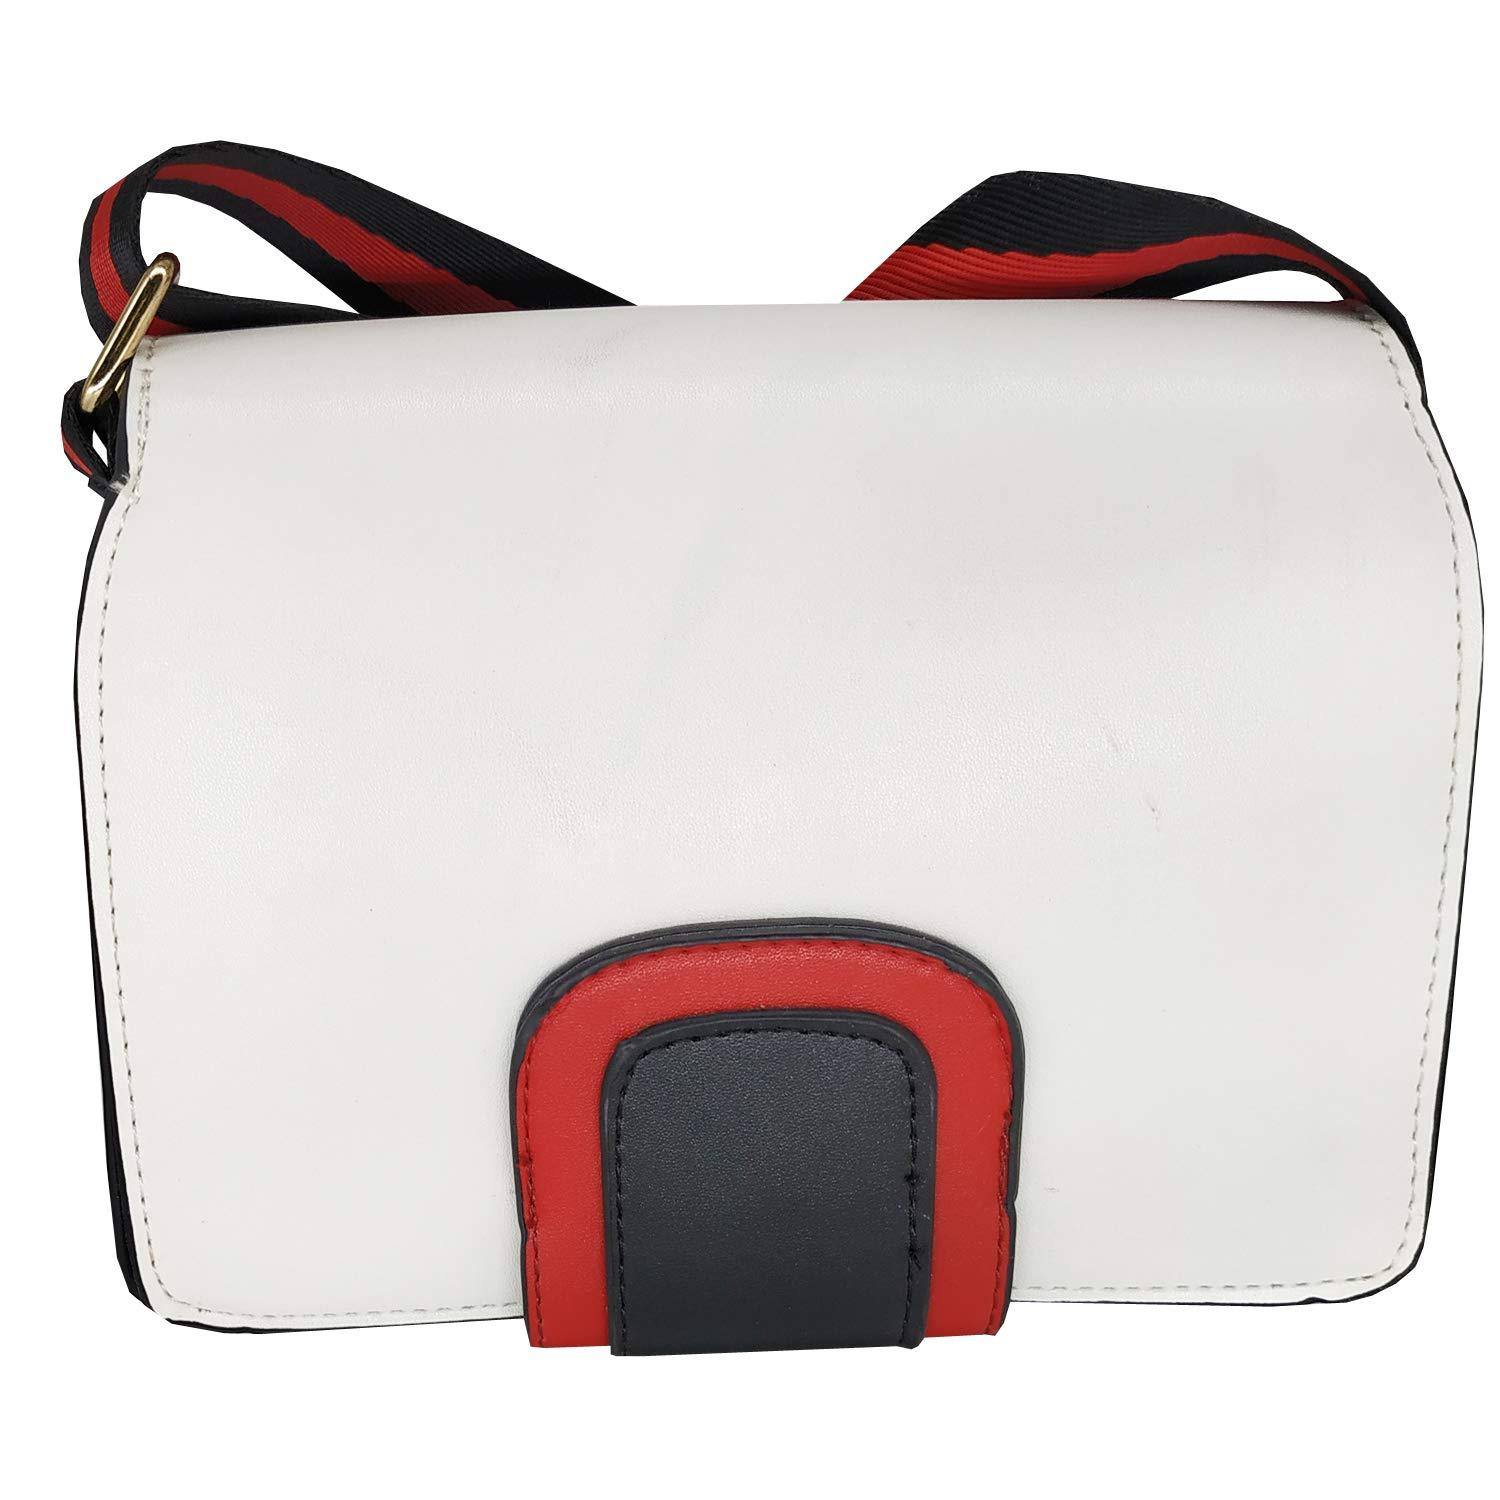 Box Type Girls Sling Bag Side Bag Cross Body Bag (White) - Bagaholics Gift